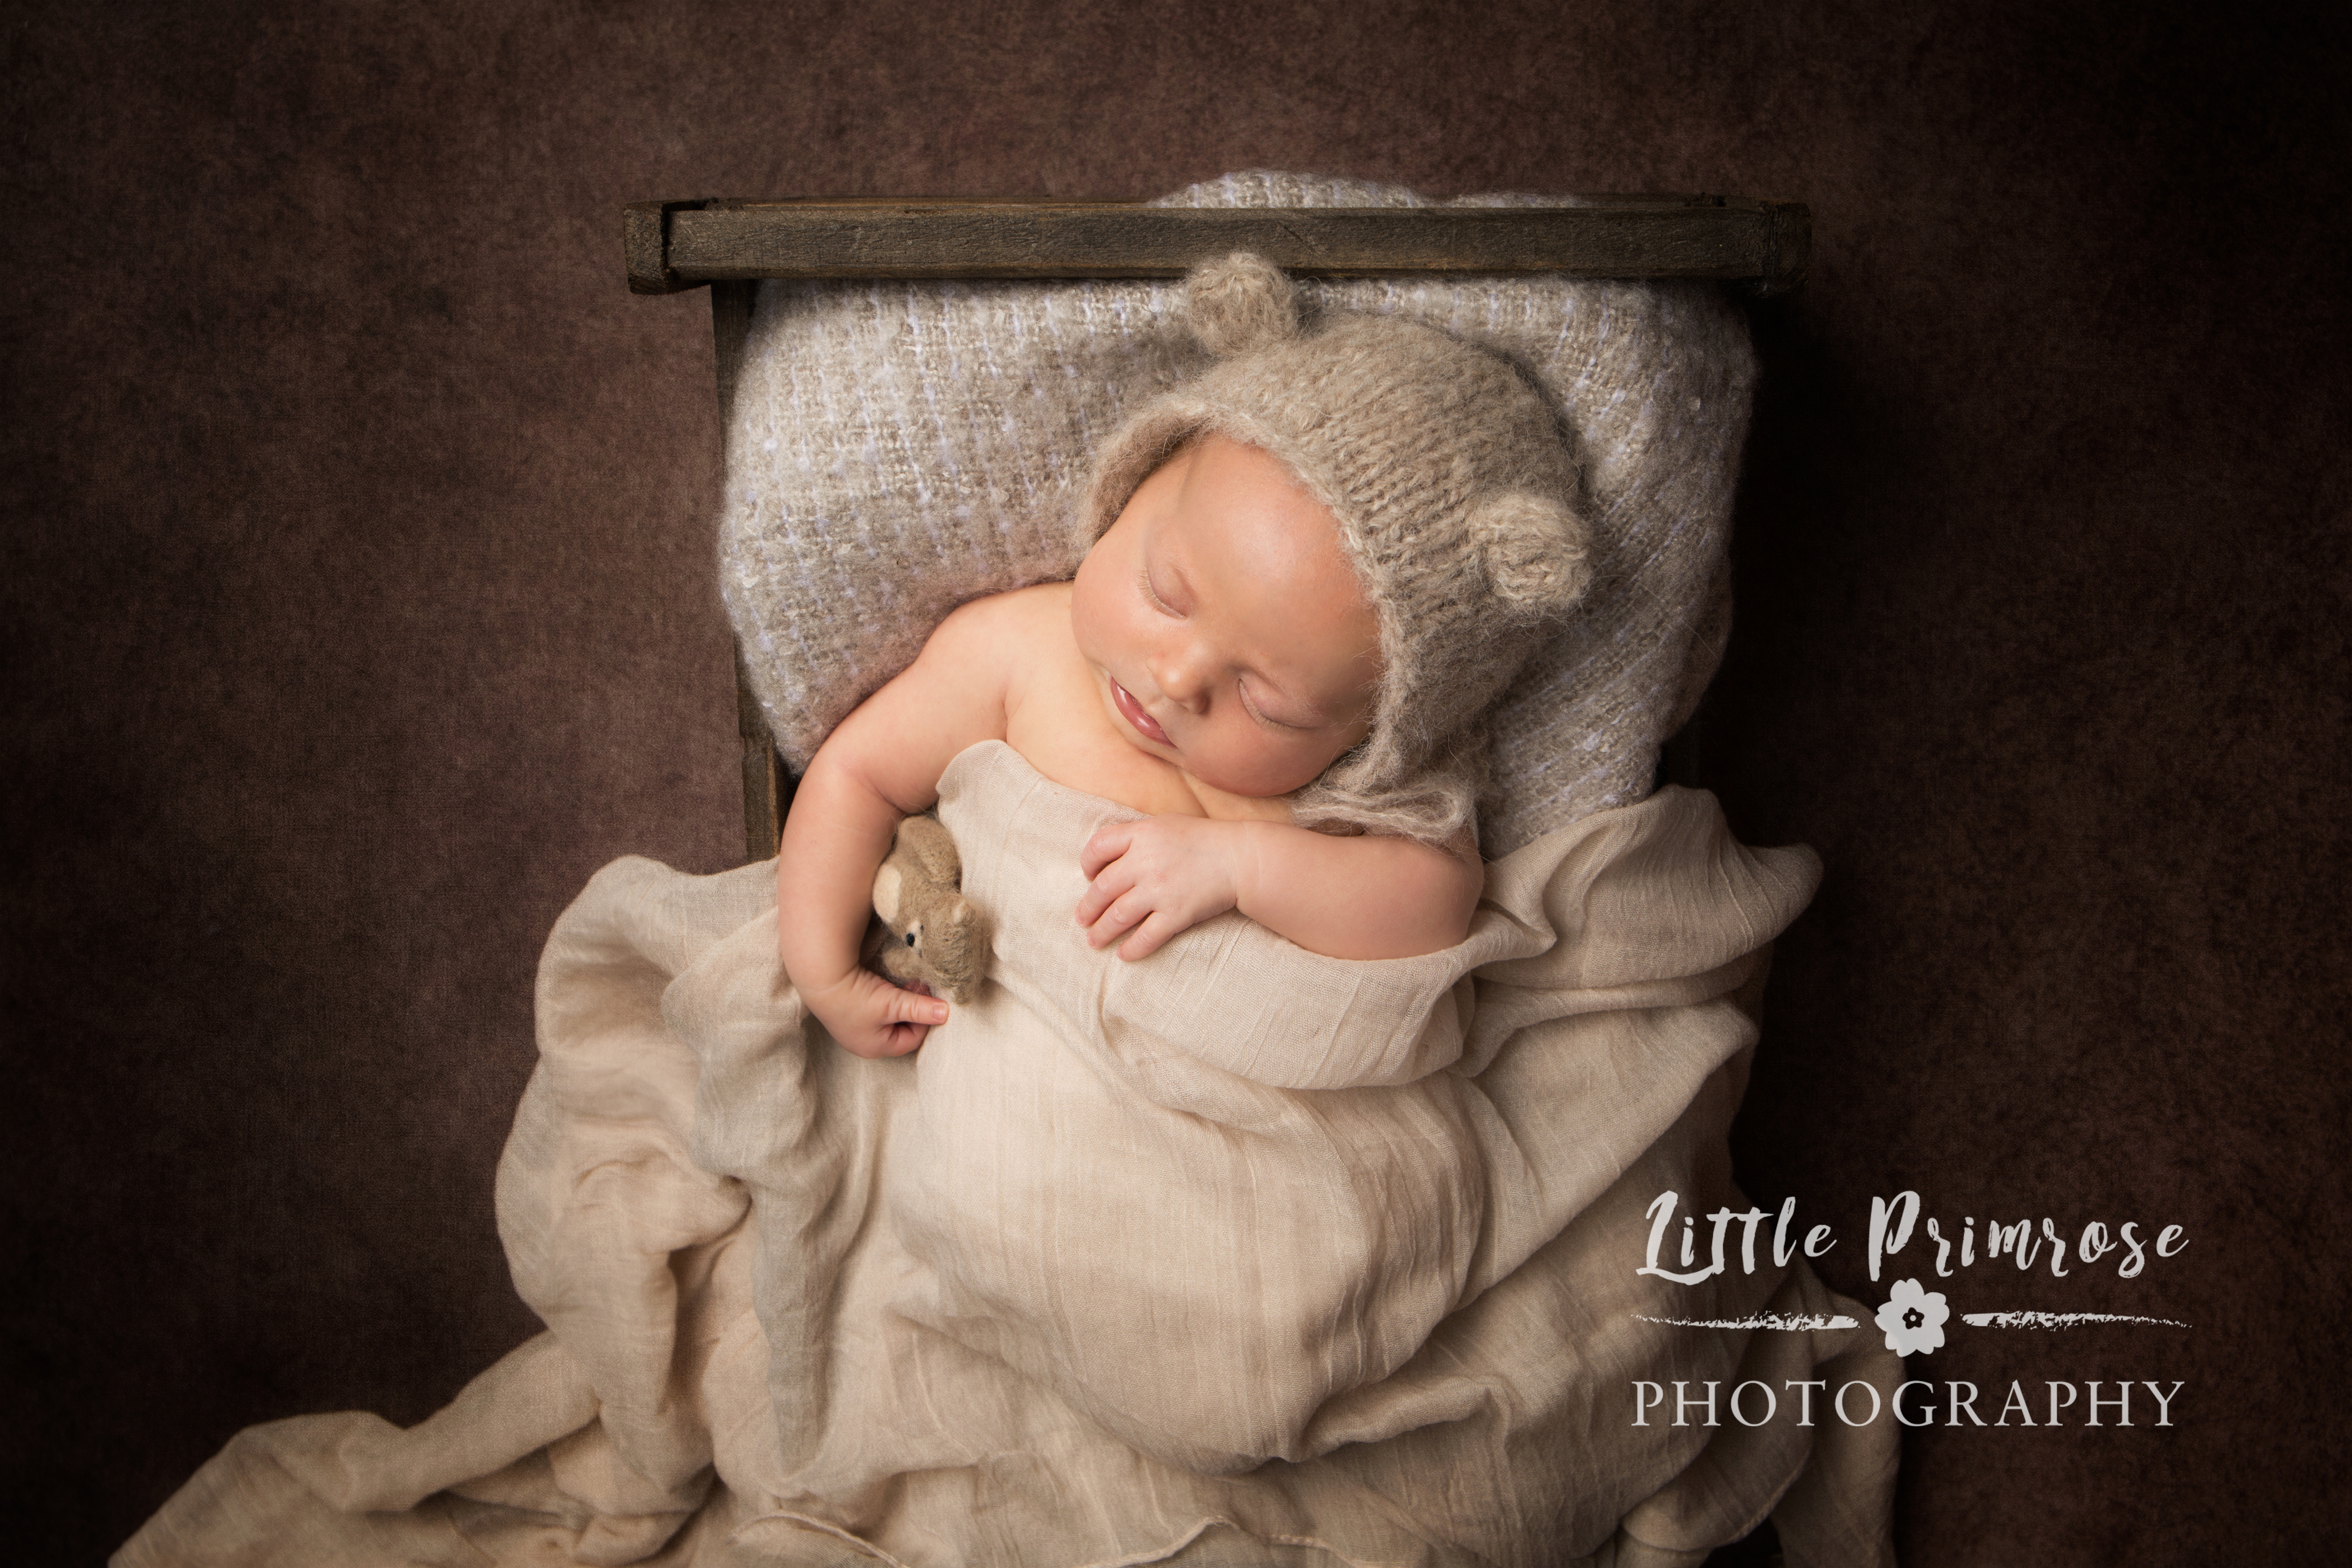 7 week old baby photo - Nantwich